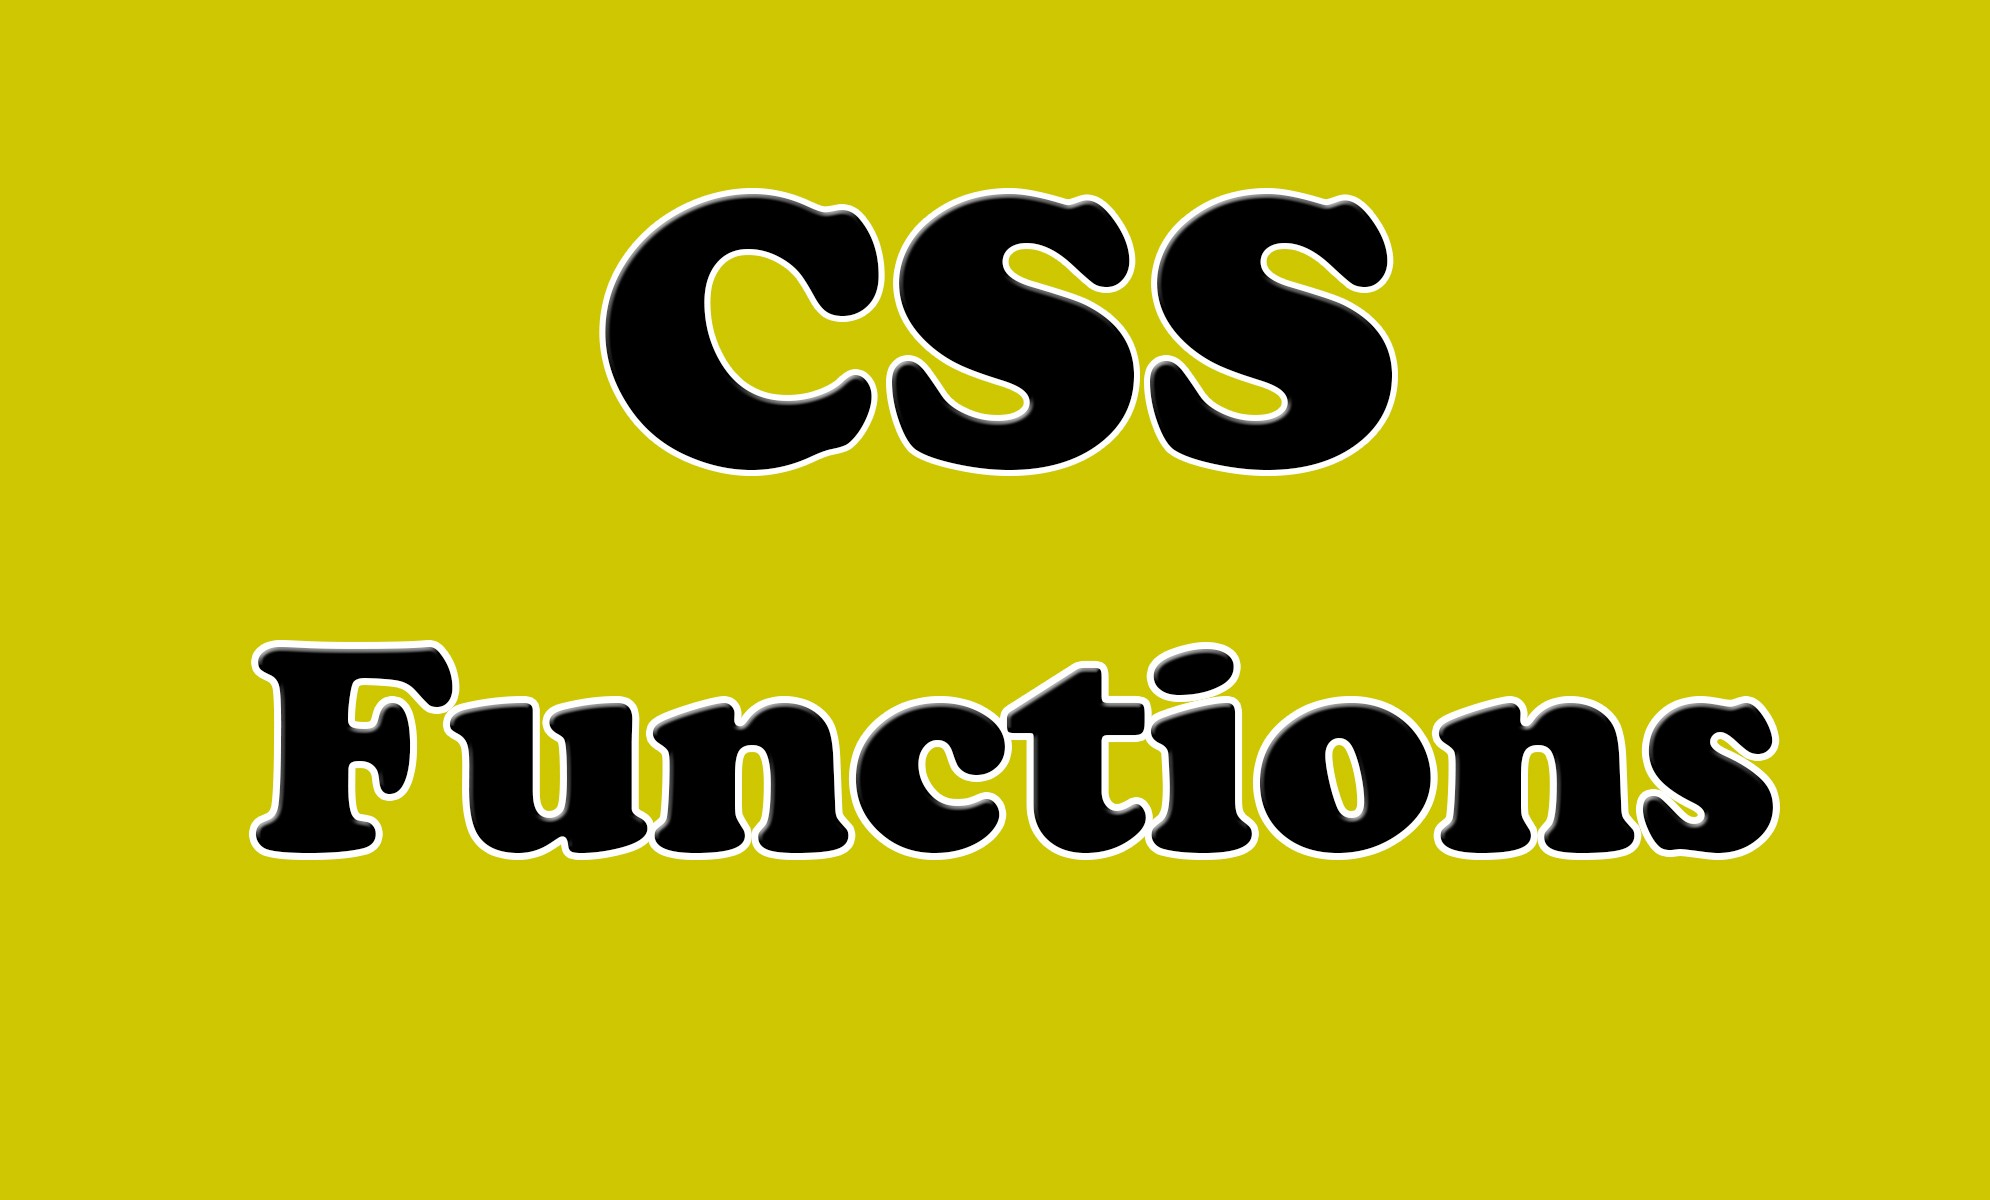 CSS functions.